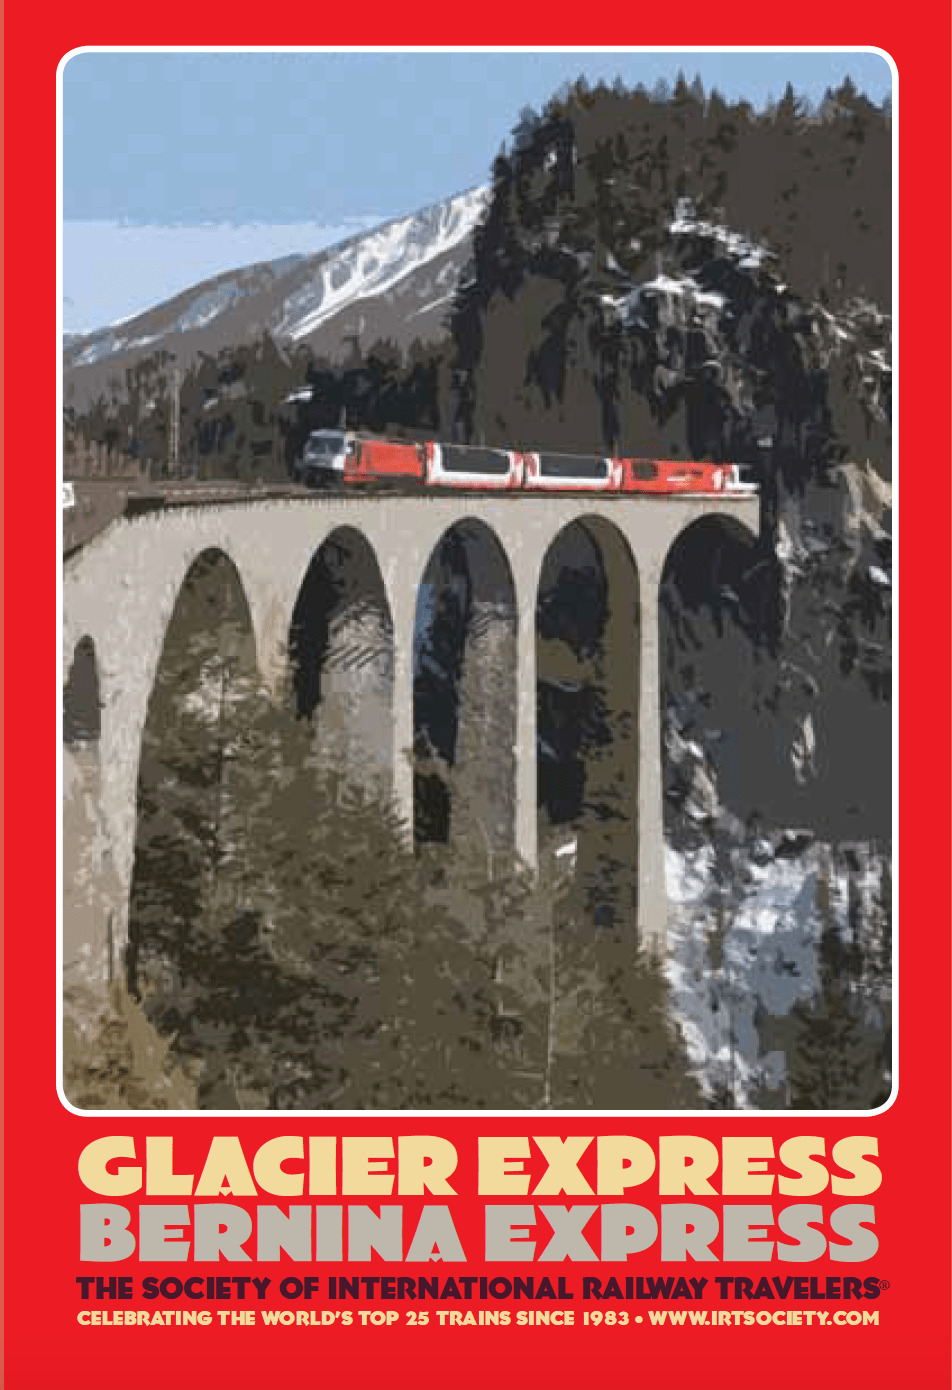 Poster of Switzerland's famous Glacier Express and Bernina Express